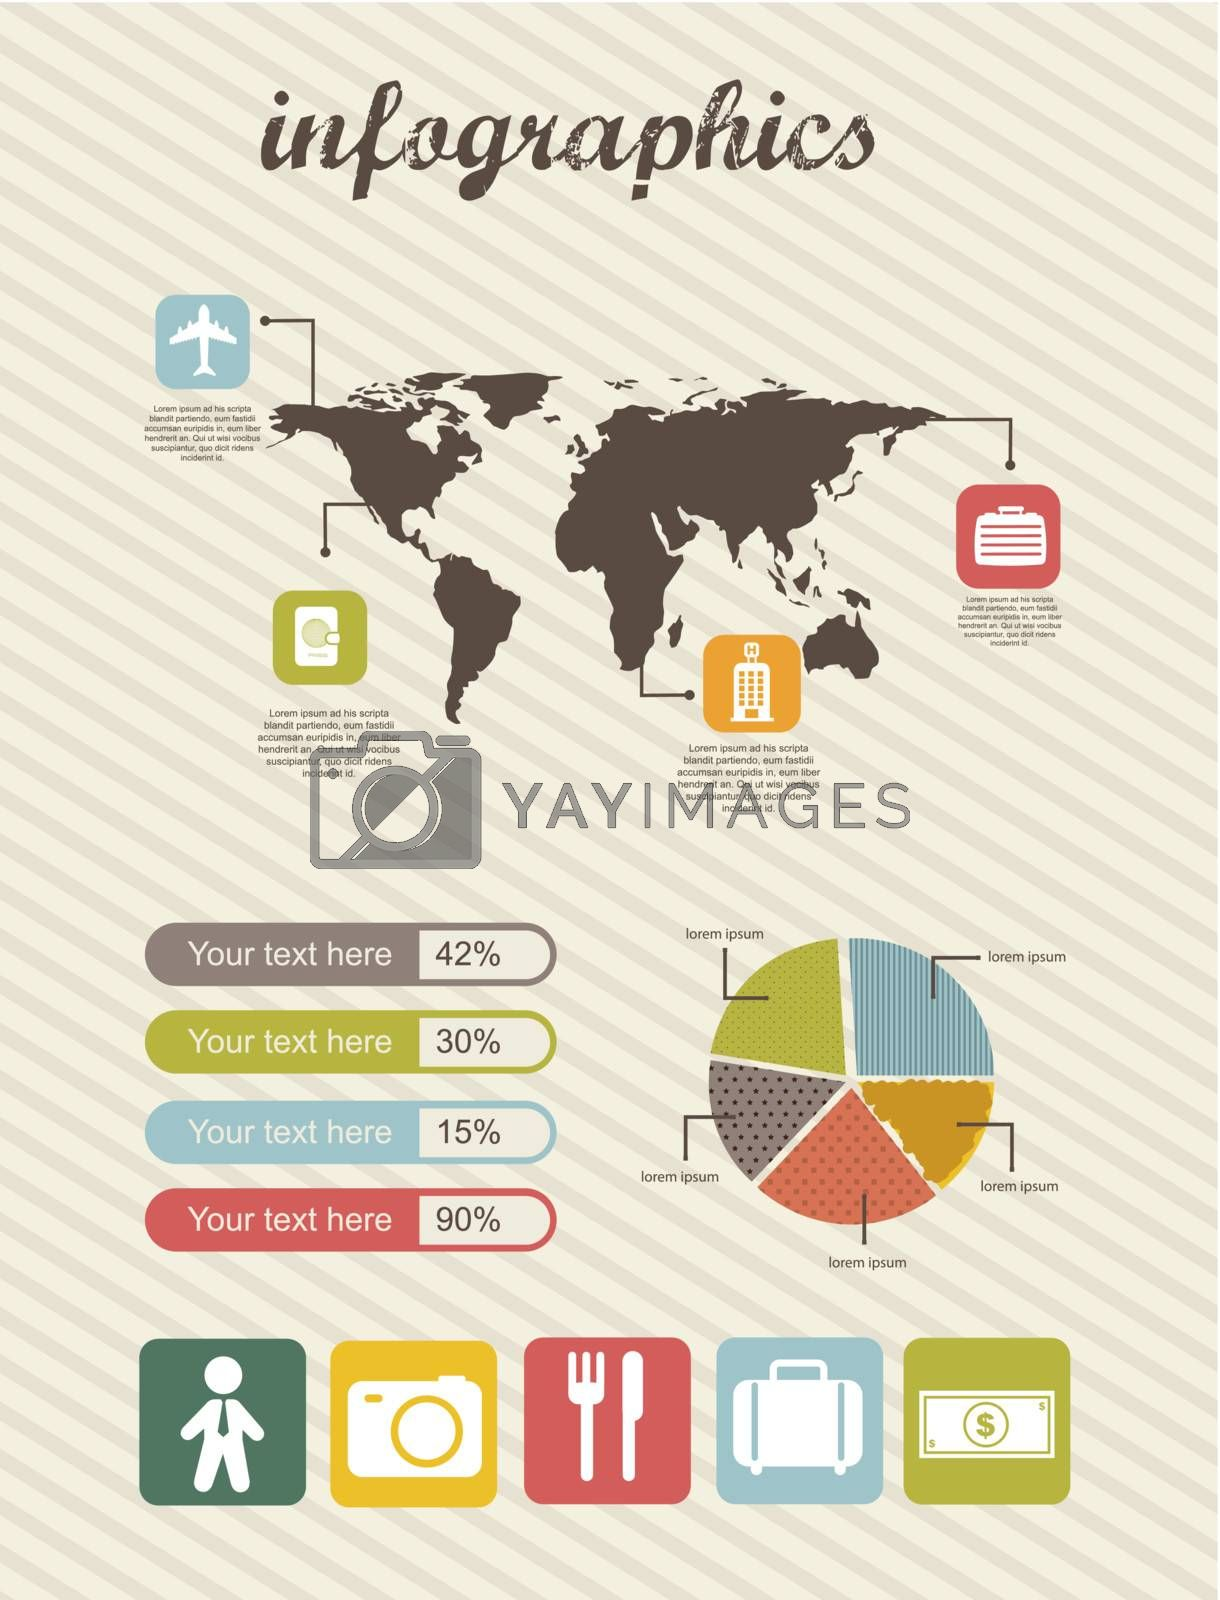 infographics of business travel, vintage style. vector illustration